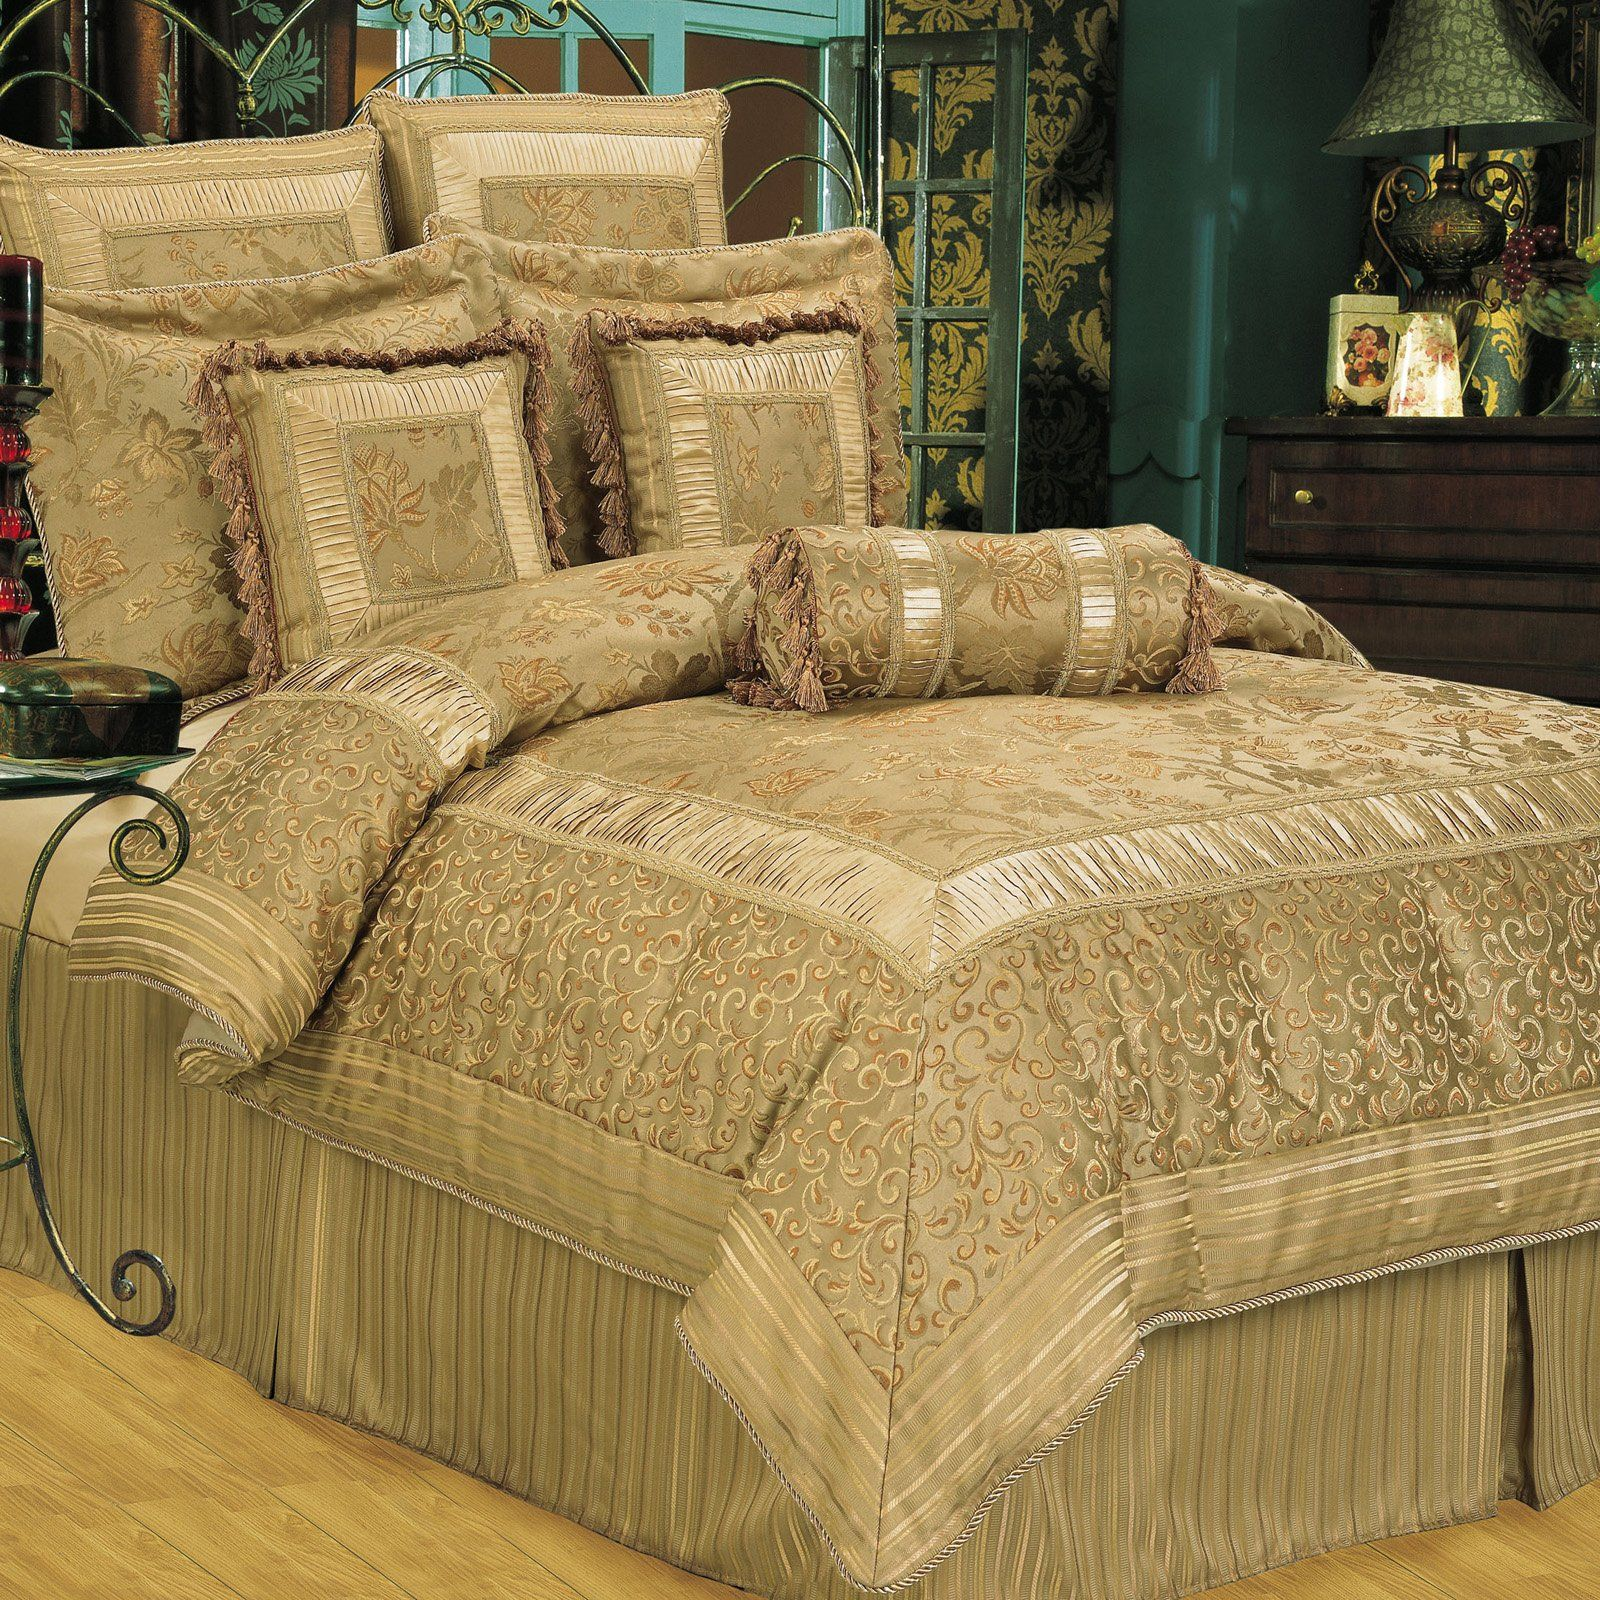 Have to have it. kathy ireland Home by Hallmart Collectibles Golden Scrolls Comforter Set - $296.98 @hayneedle.com